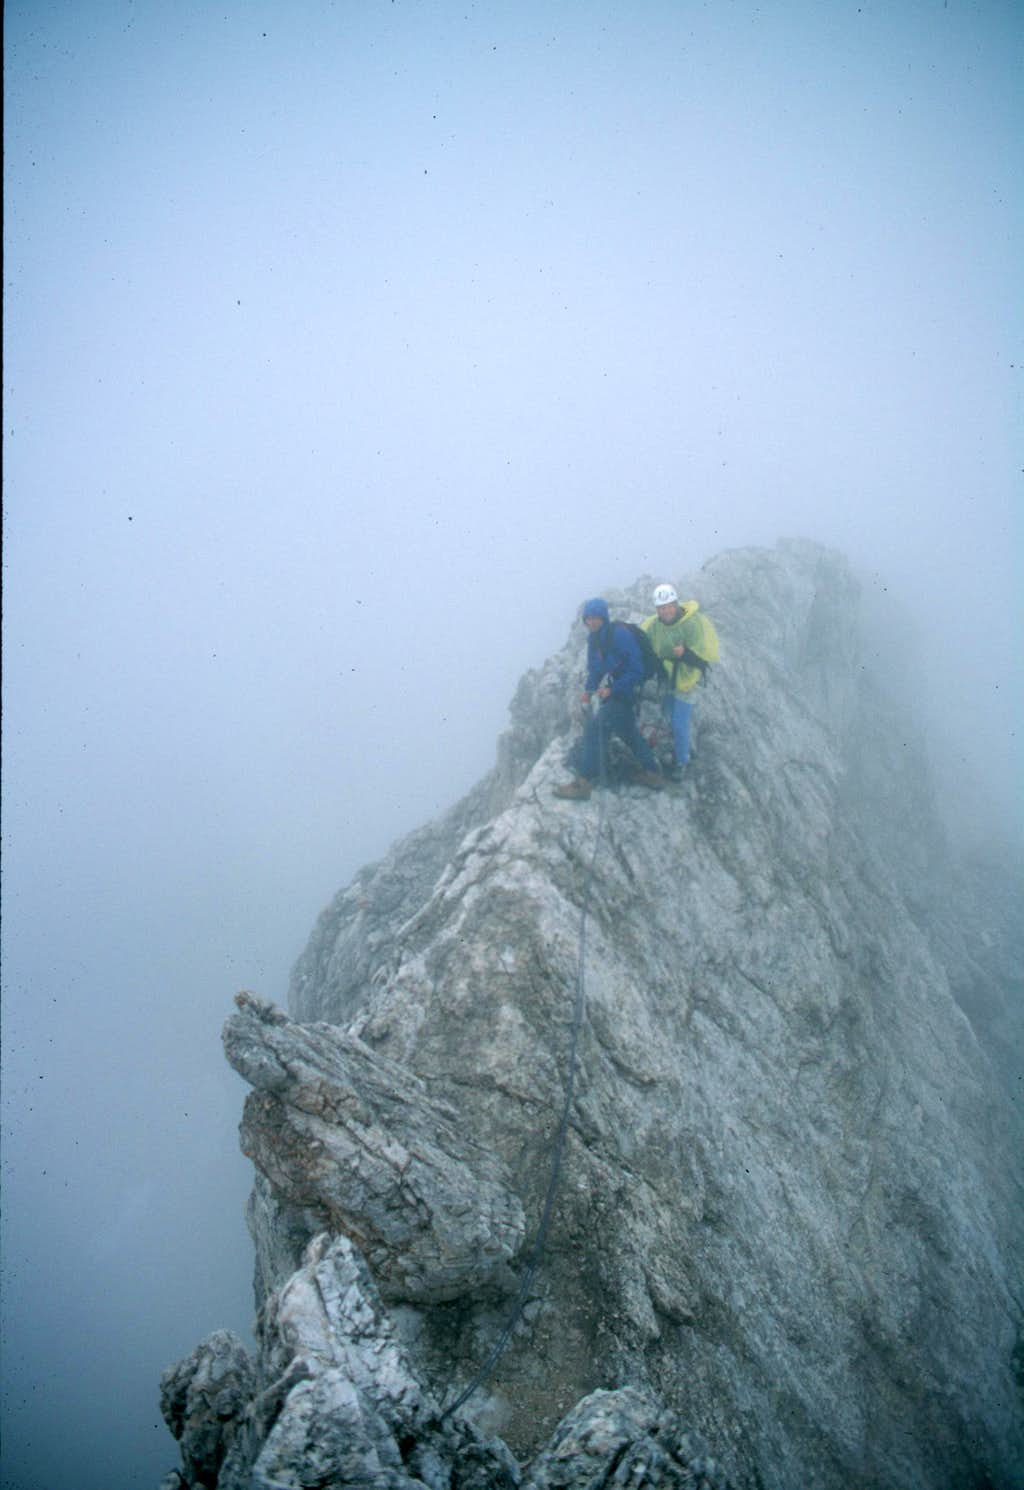 Belay in the Clouds